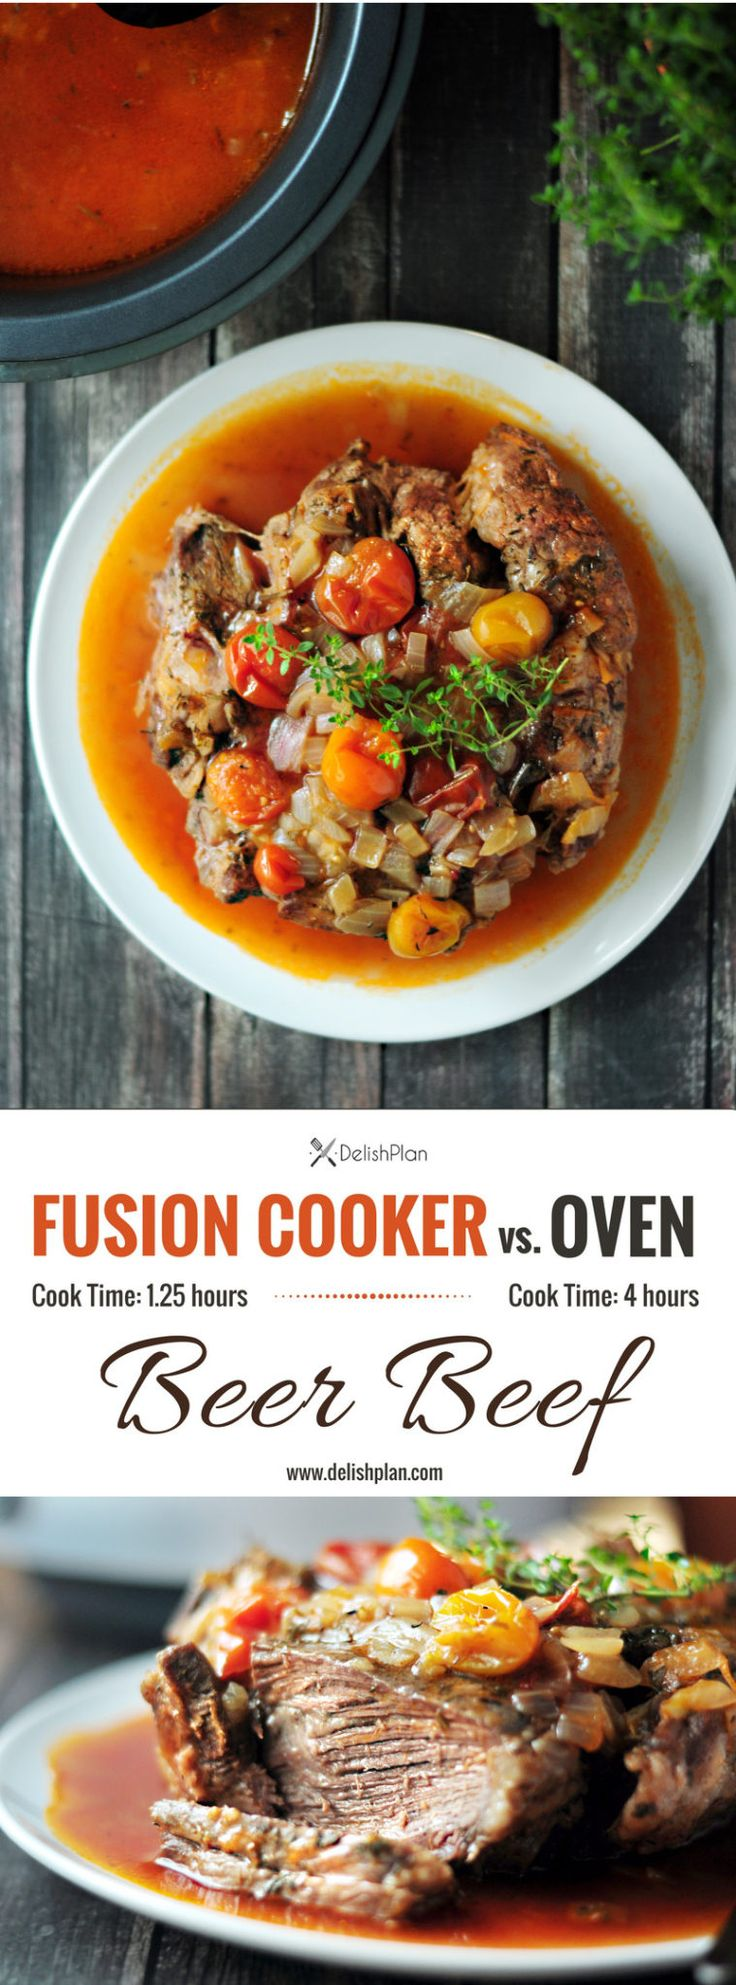 Beef roast seasoned with a savory dry rub, browned, and then cooked in beer and bone broth with tomatoes and onions. Cook this beer beef in a Fusion Cooker to save 68% of the cooking time and 76% of energy.